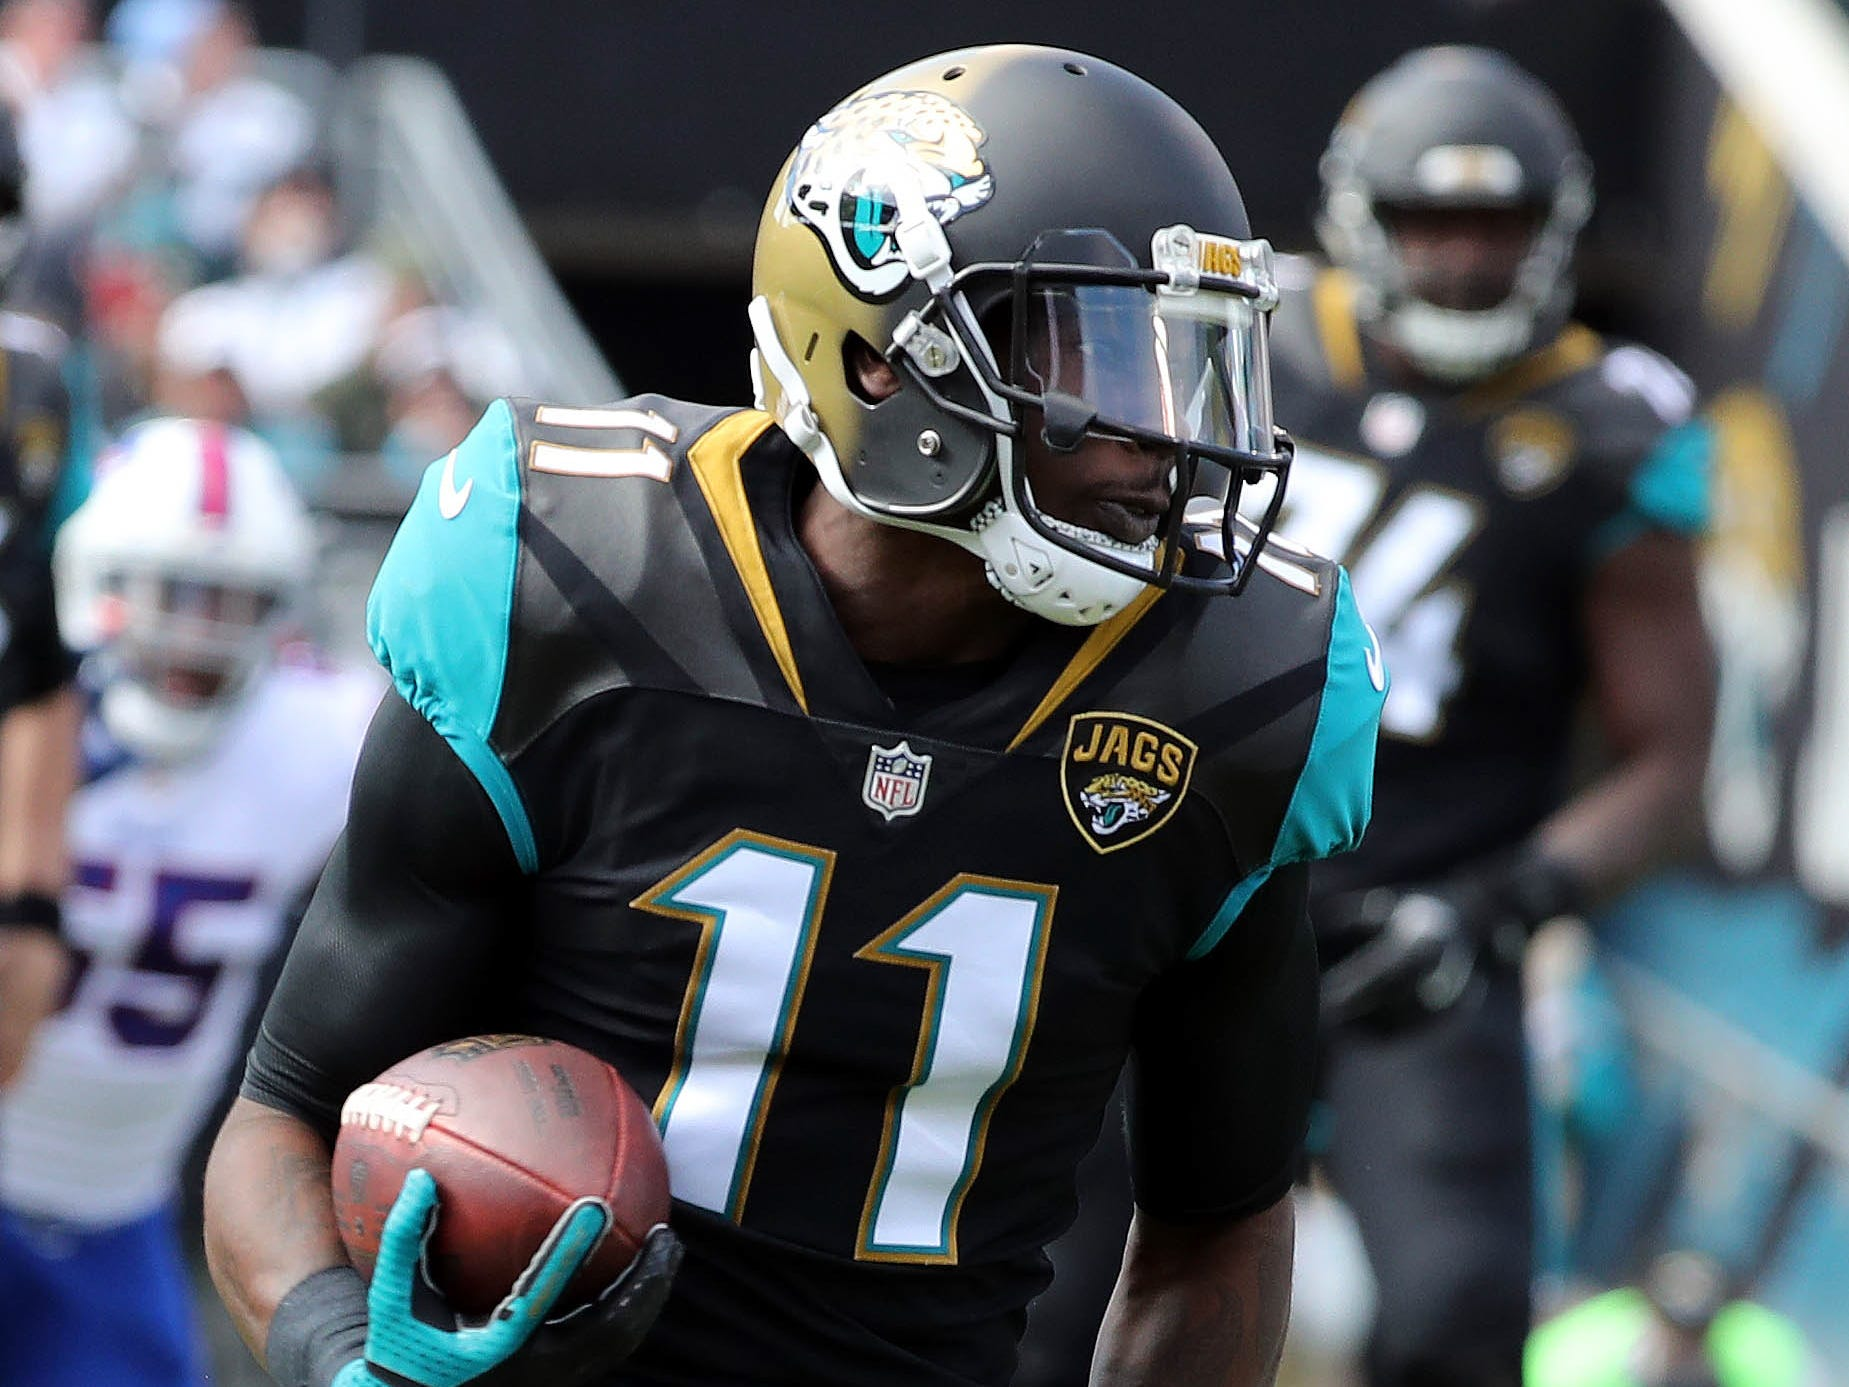 Marqise Lee, WR, Jacksonville Jaguars (left knee injury, out for season)